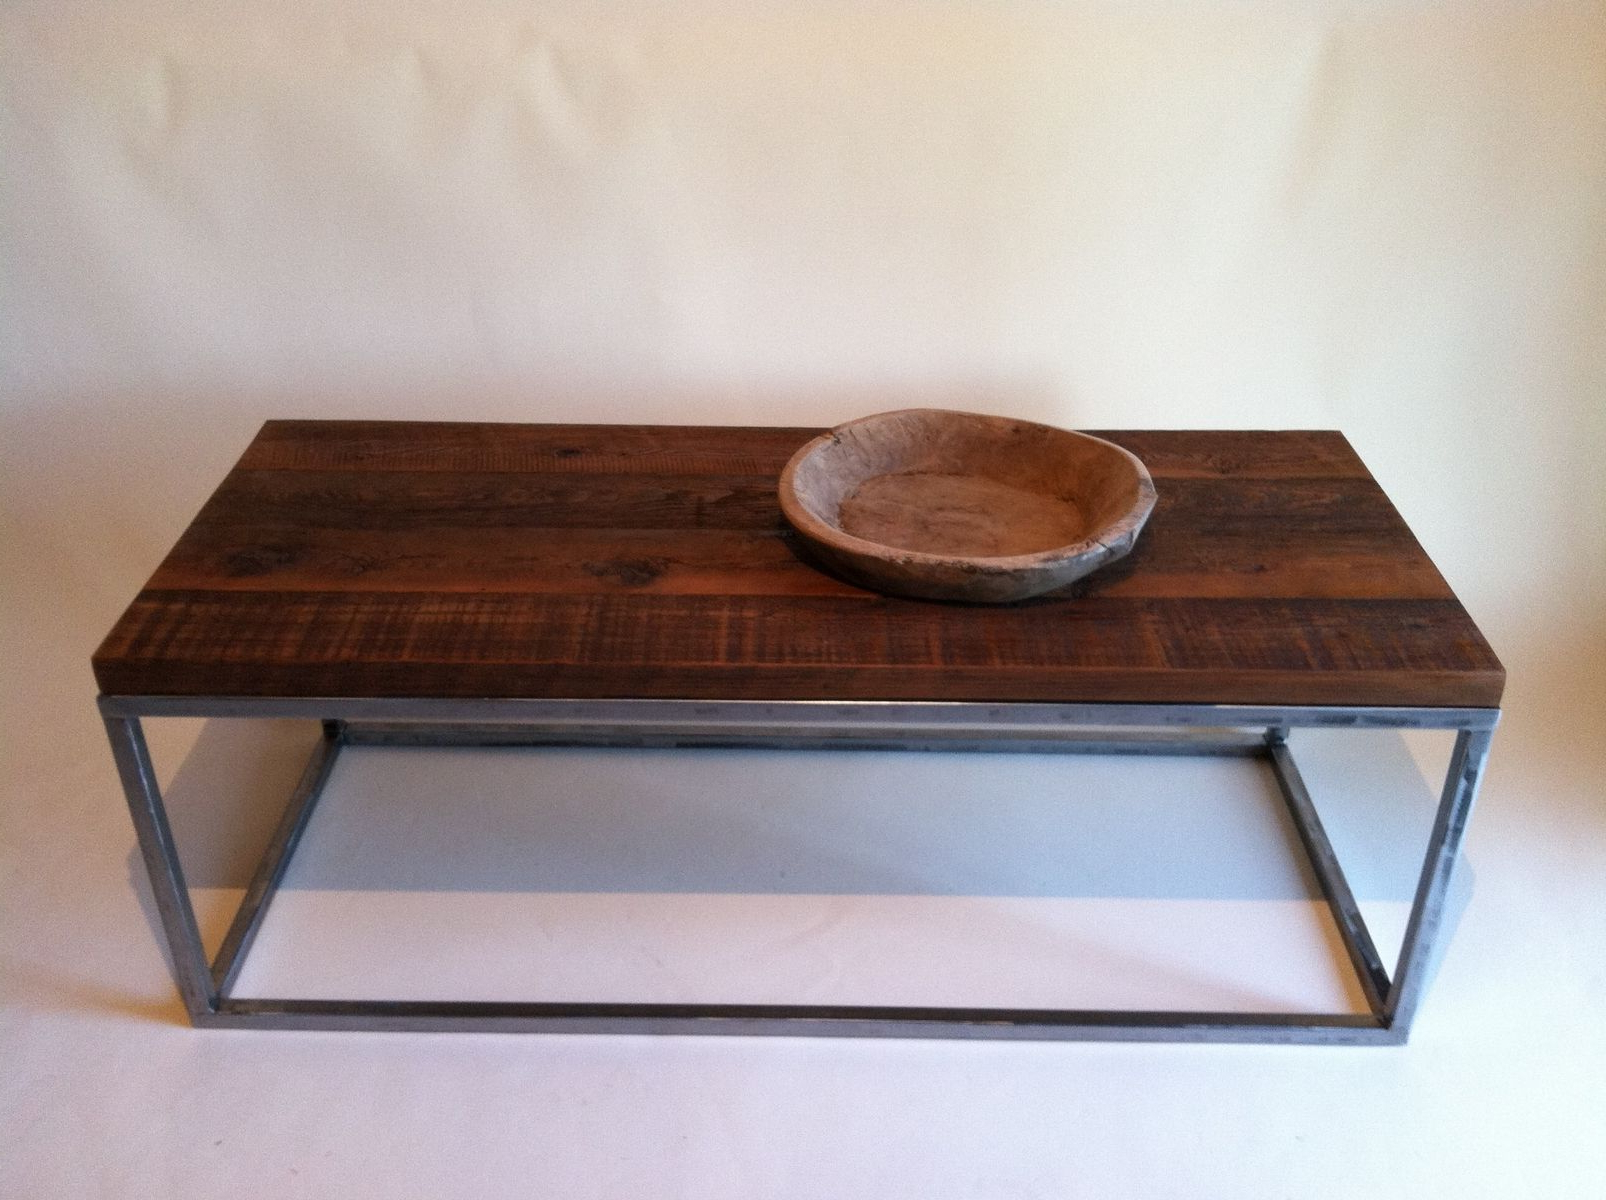 Iron Wood Coffee Tables With Wheels In Famous Handmade Reclaimed Wood Coffee Tables With Rectagular Polished Metal (View 10 of 20)